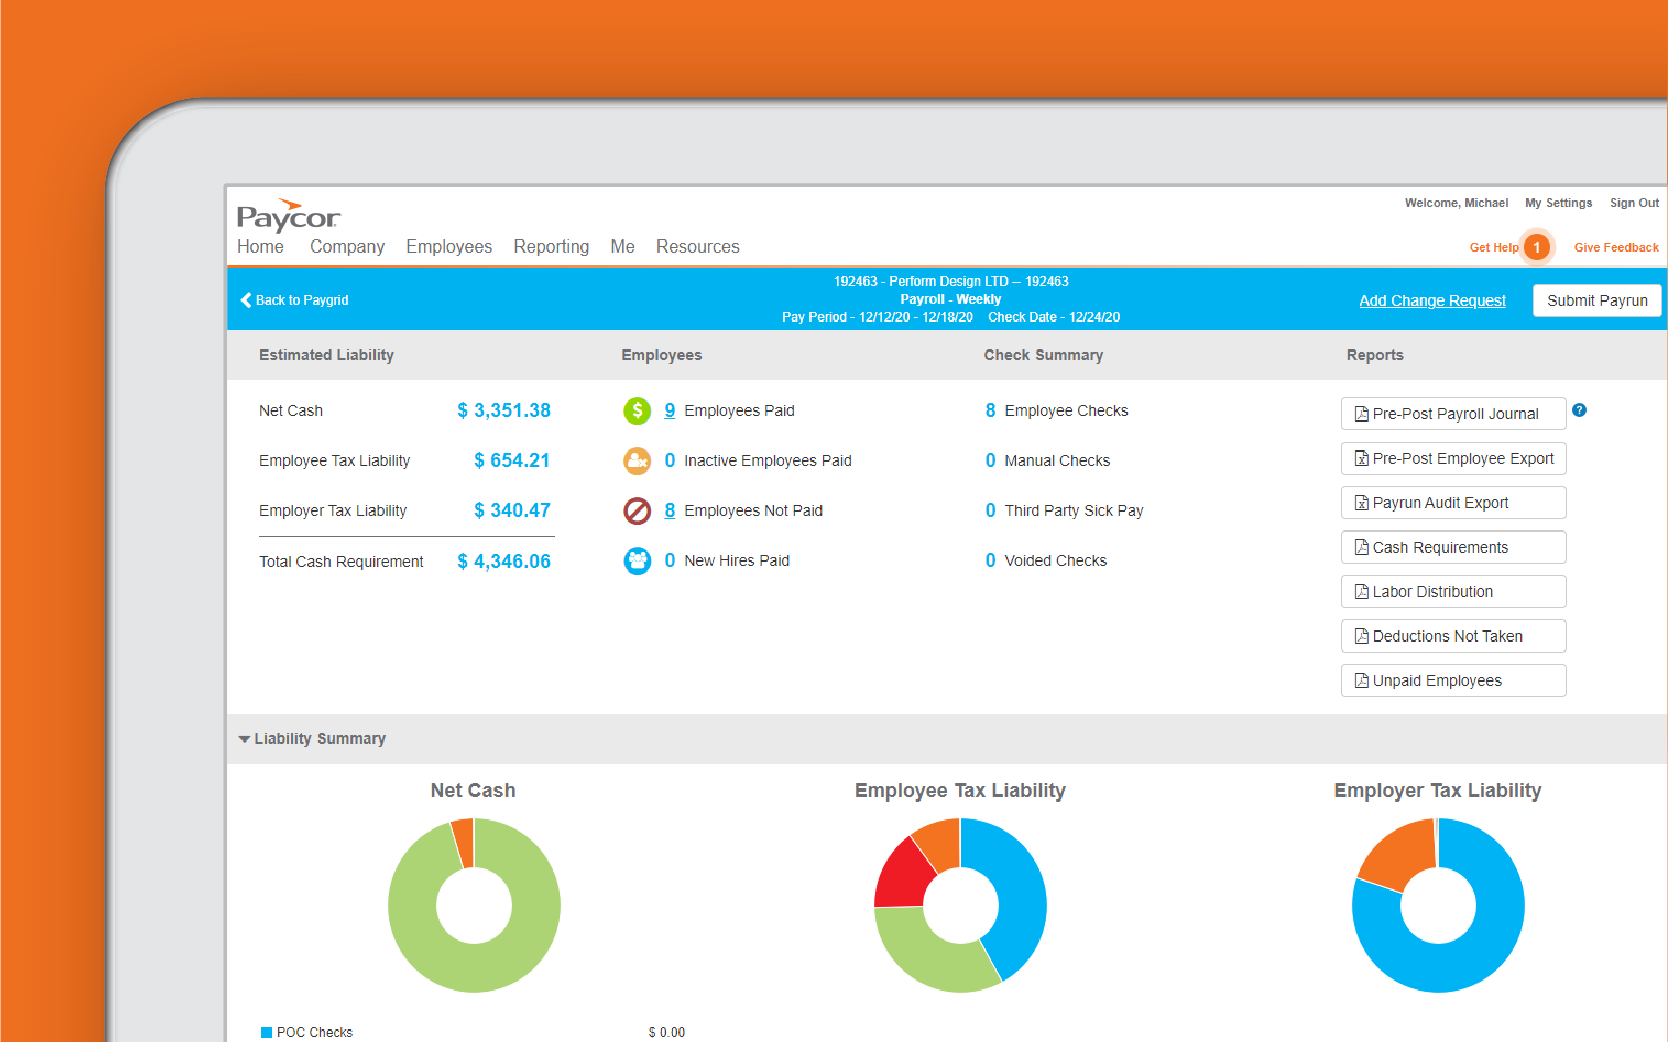 Corner of tablet showing Paycor reporting analytics dashboard against orange background